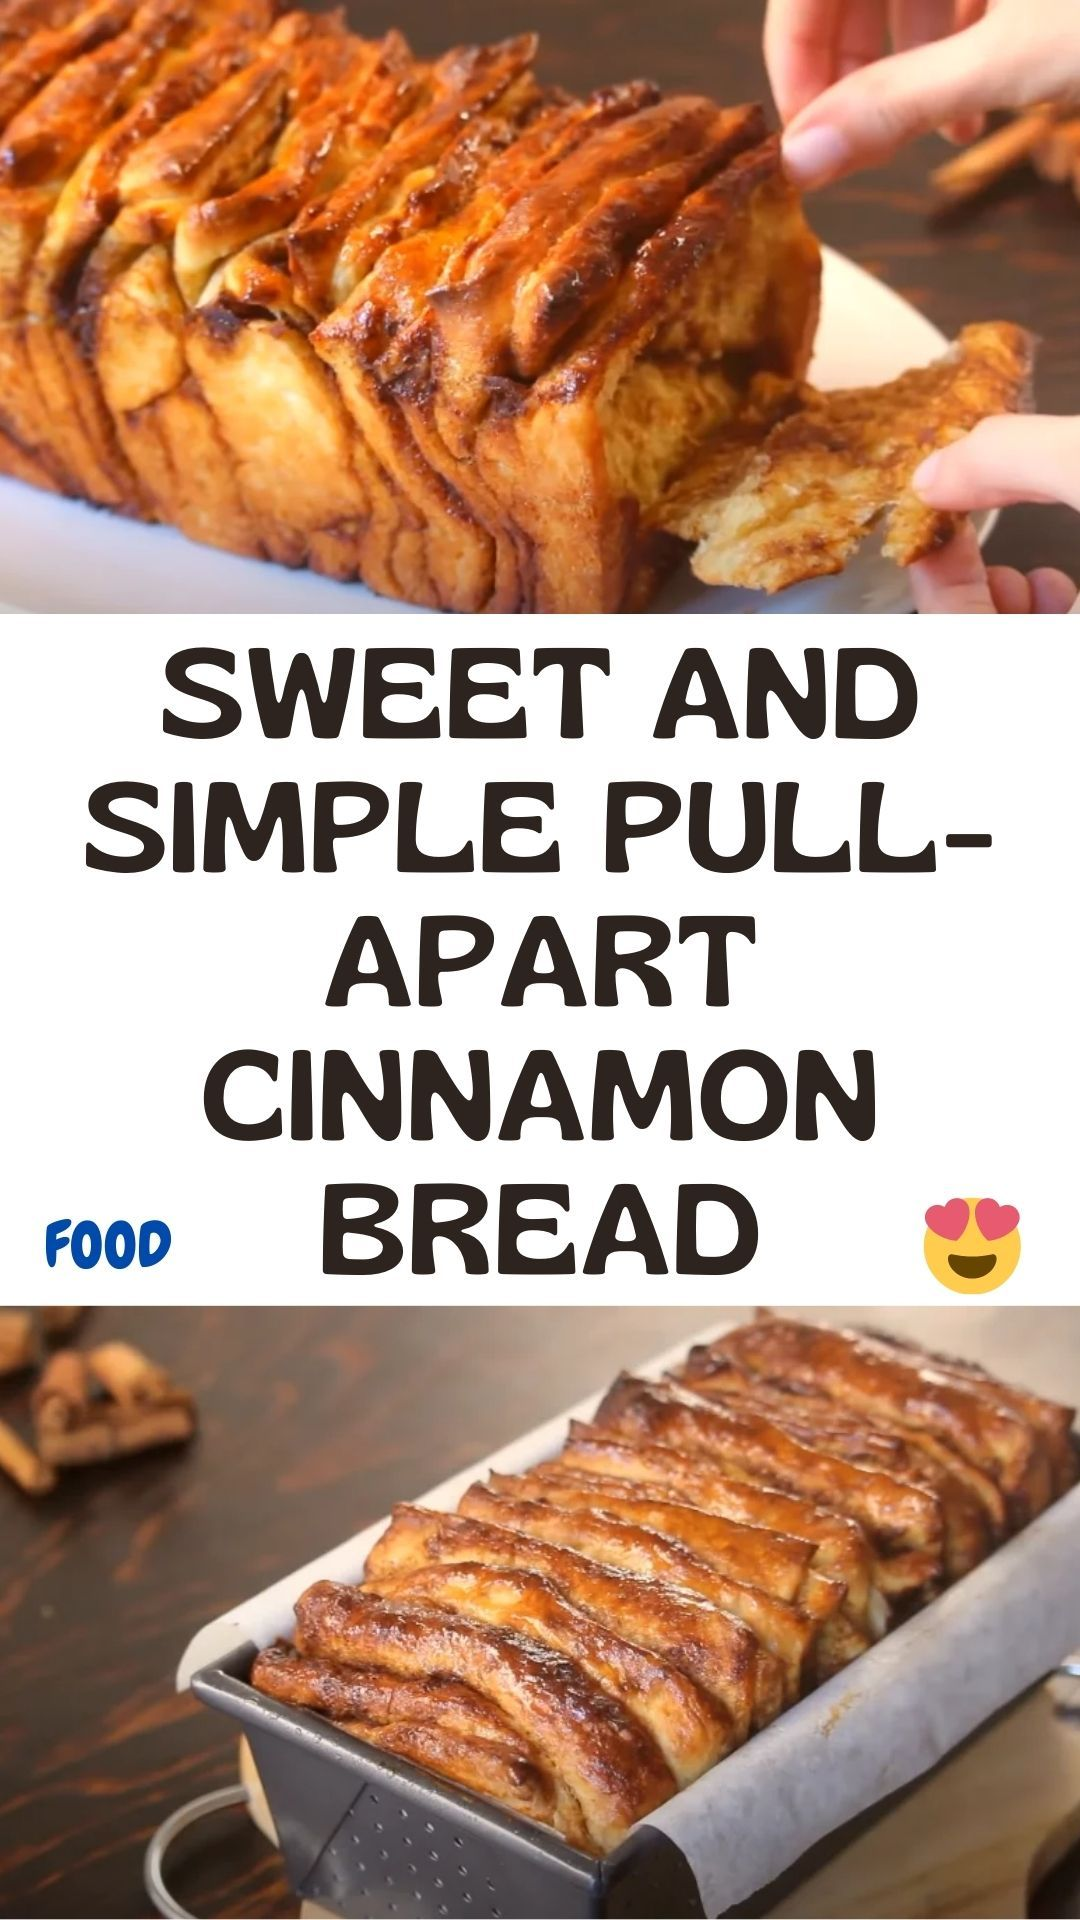 Sweet And Simple Pull-Apart Cinnamon Bread